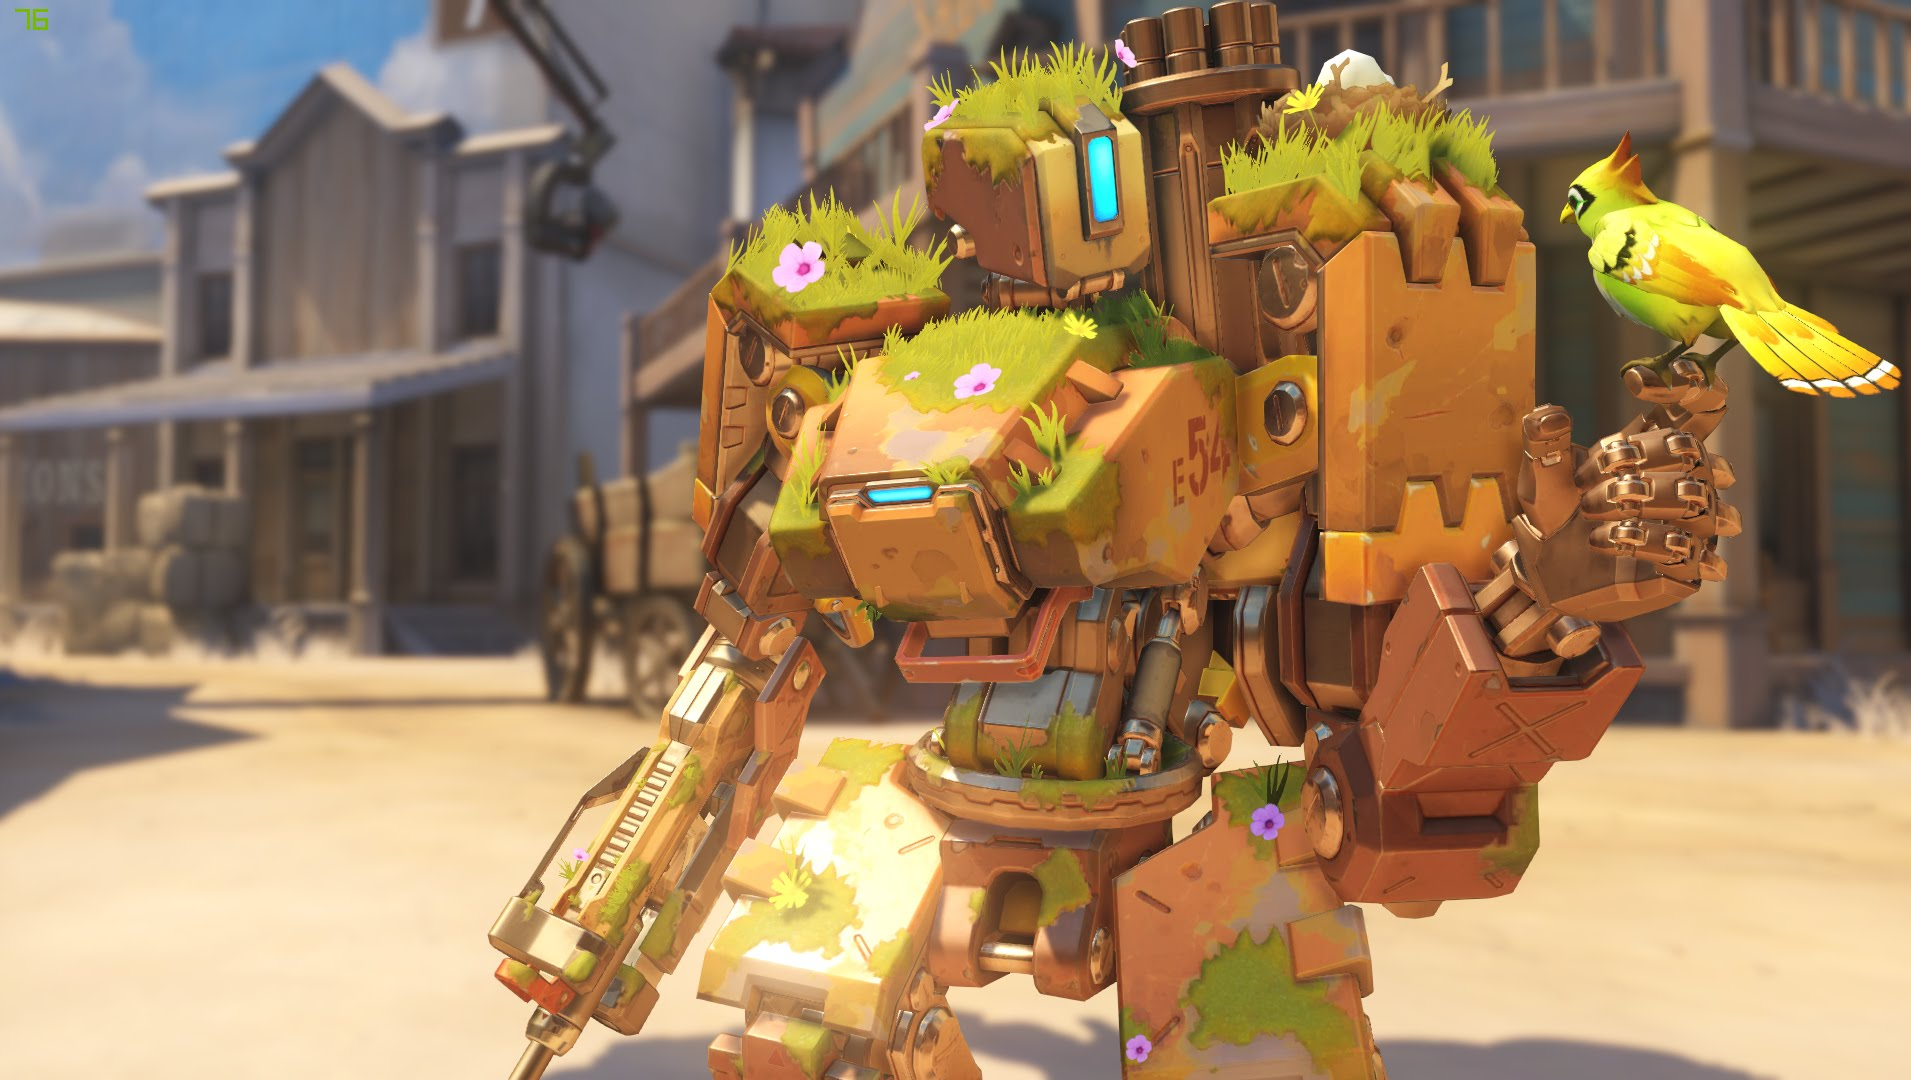 Overwatch Director Jeff Kaplan Offers His Take On The